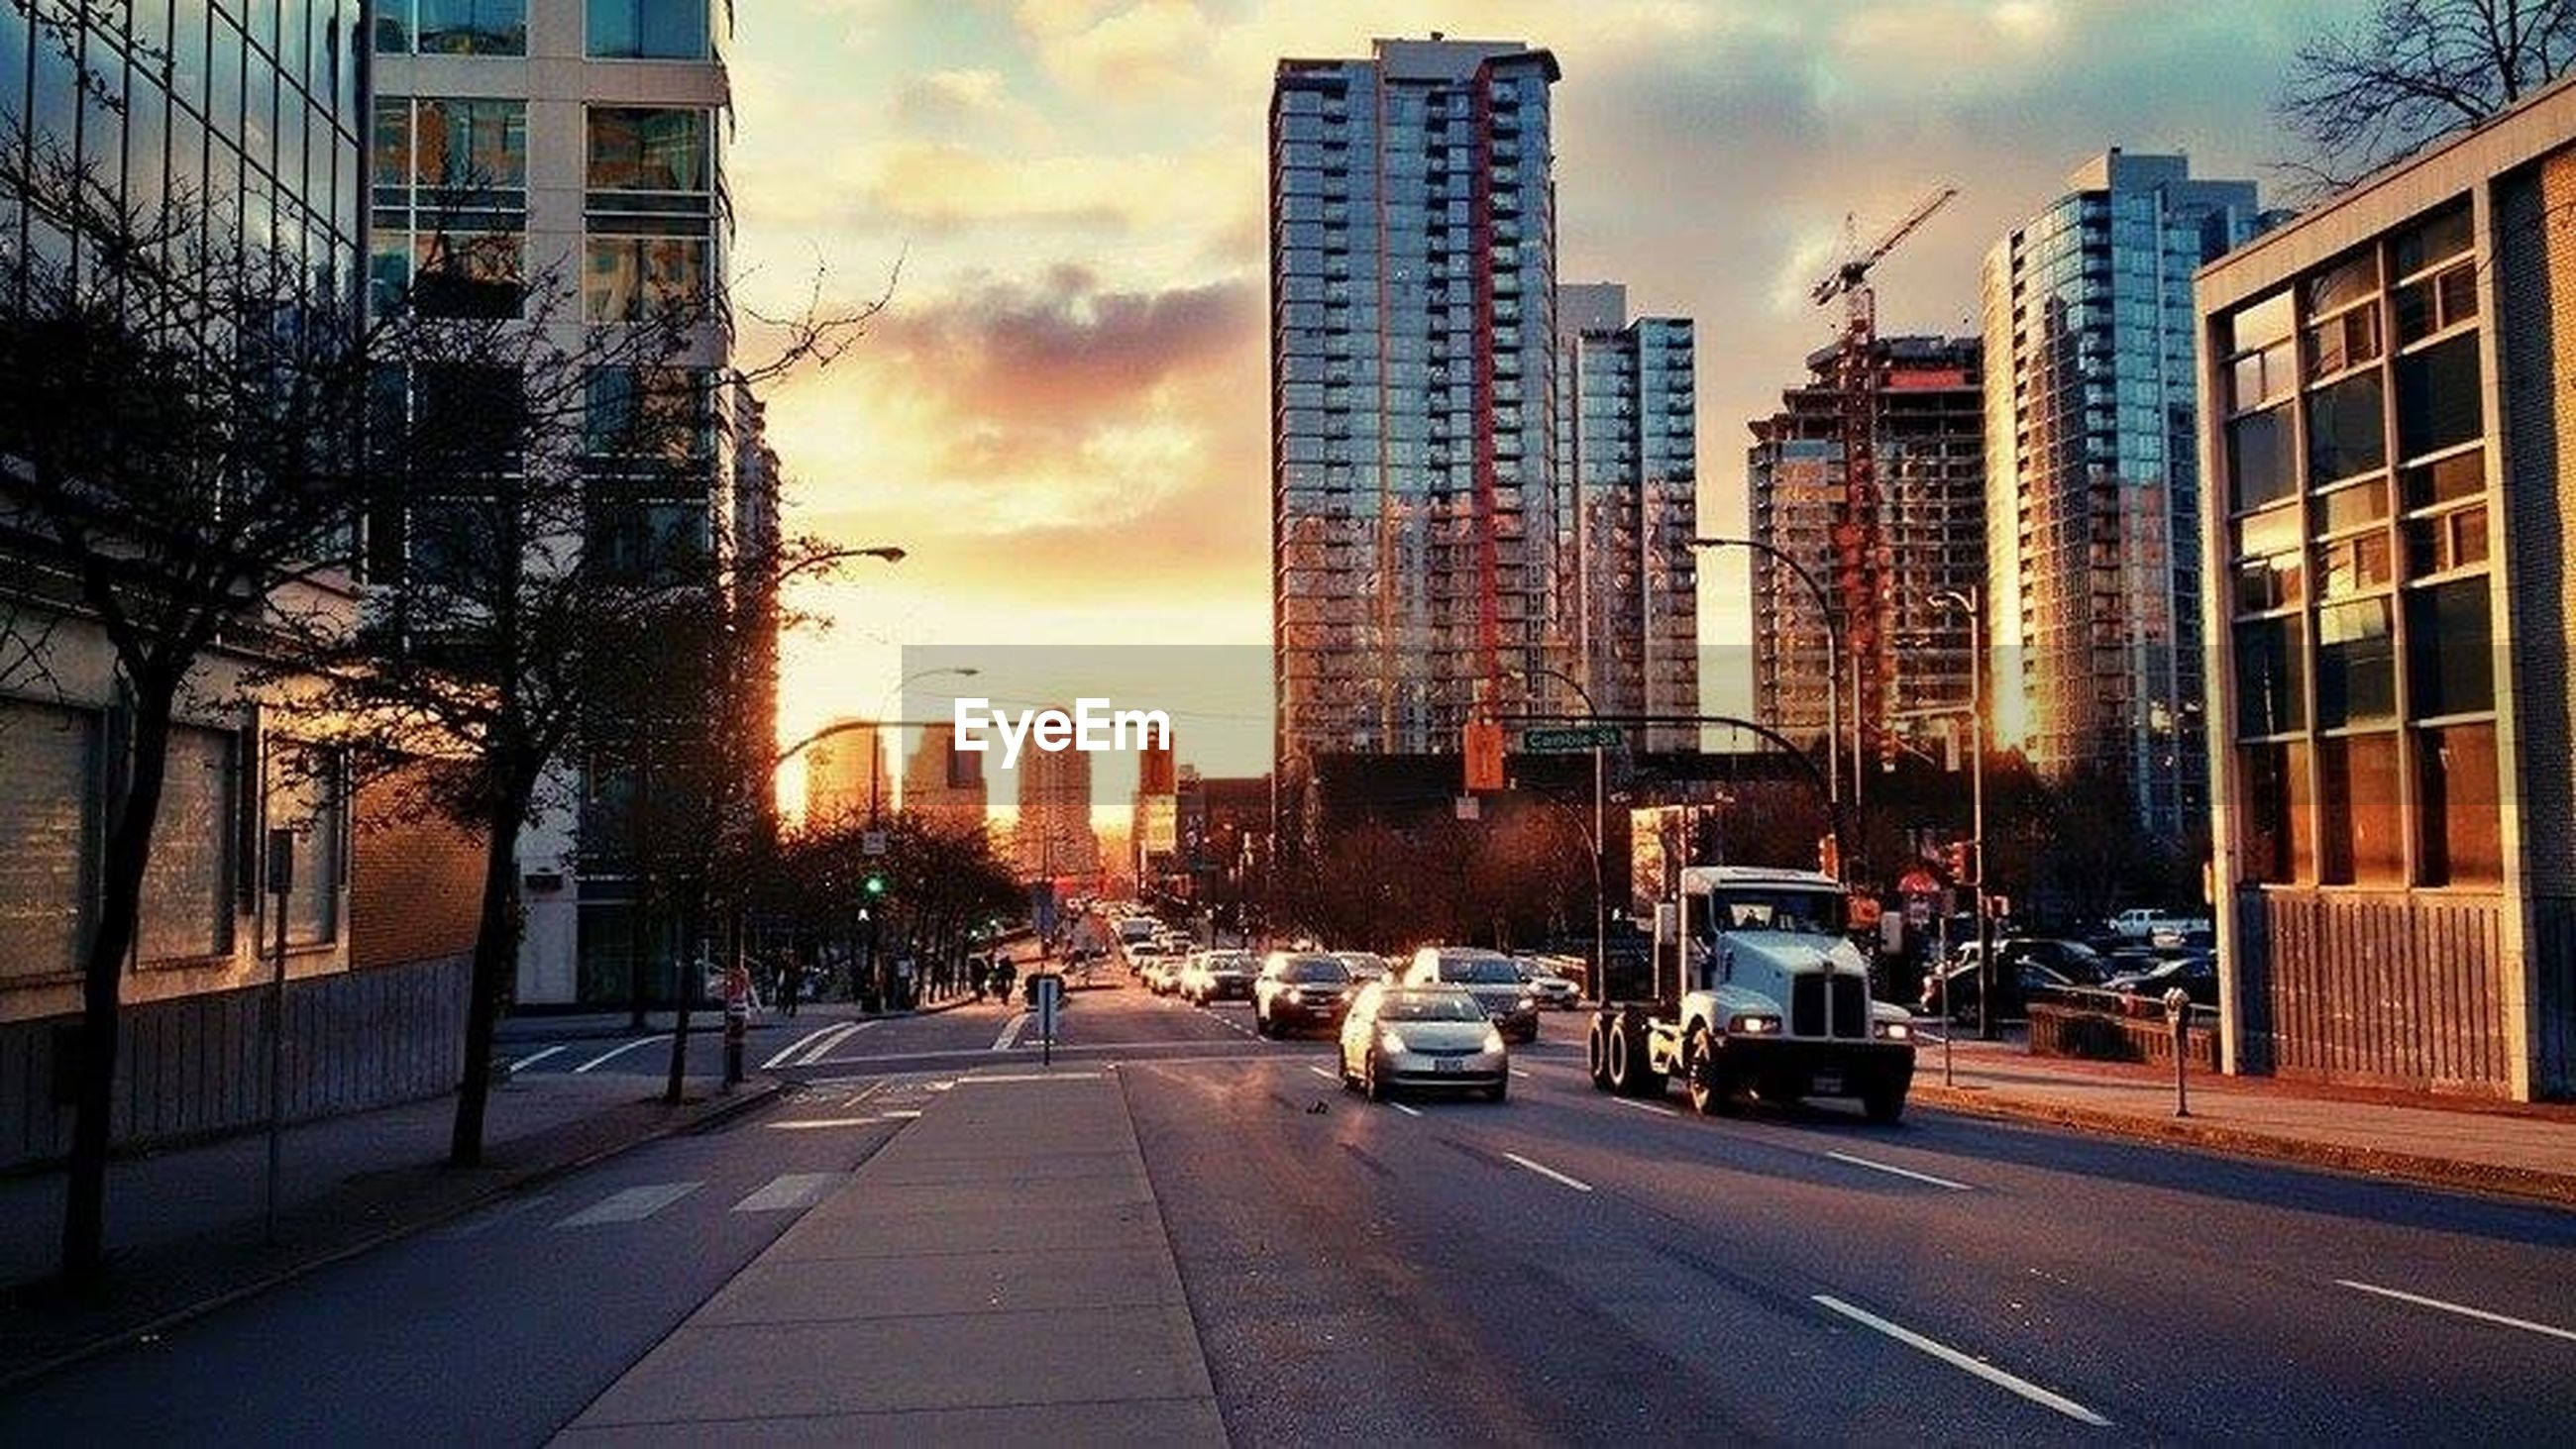 building exterior, architecture, built structure, city, transportation, car, street, land vehicle, sky, road, mode of transport, the way forward, sunset, building, city street, city life, cloud - sky, diminishing perspective, residential building, skyscraper